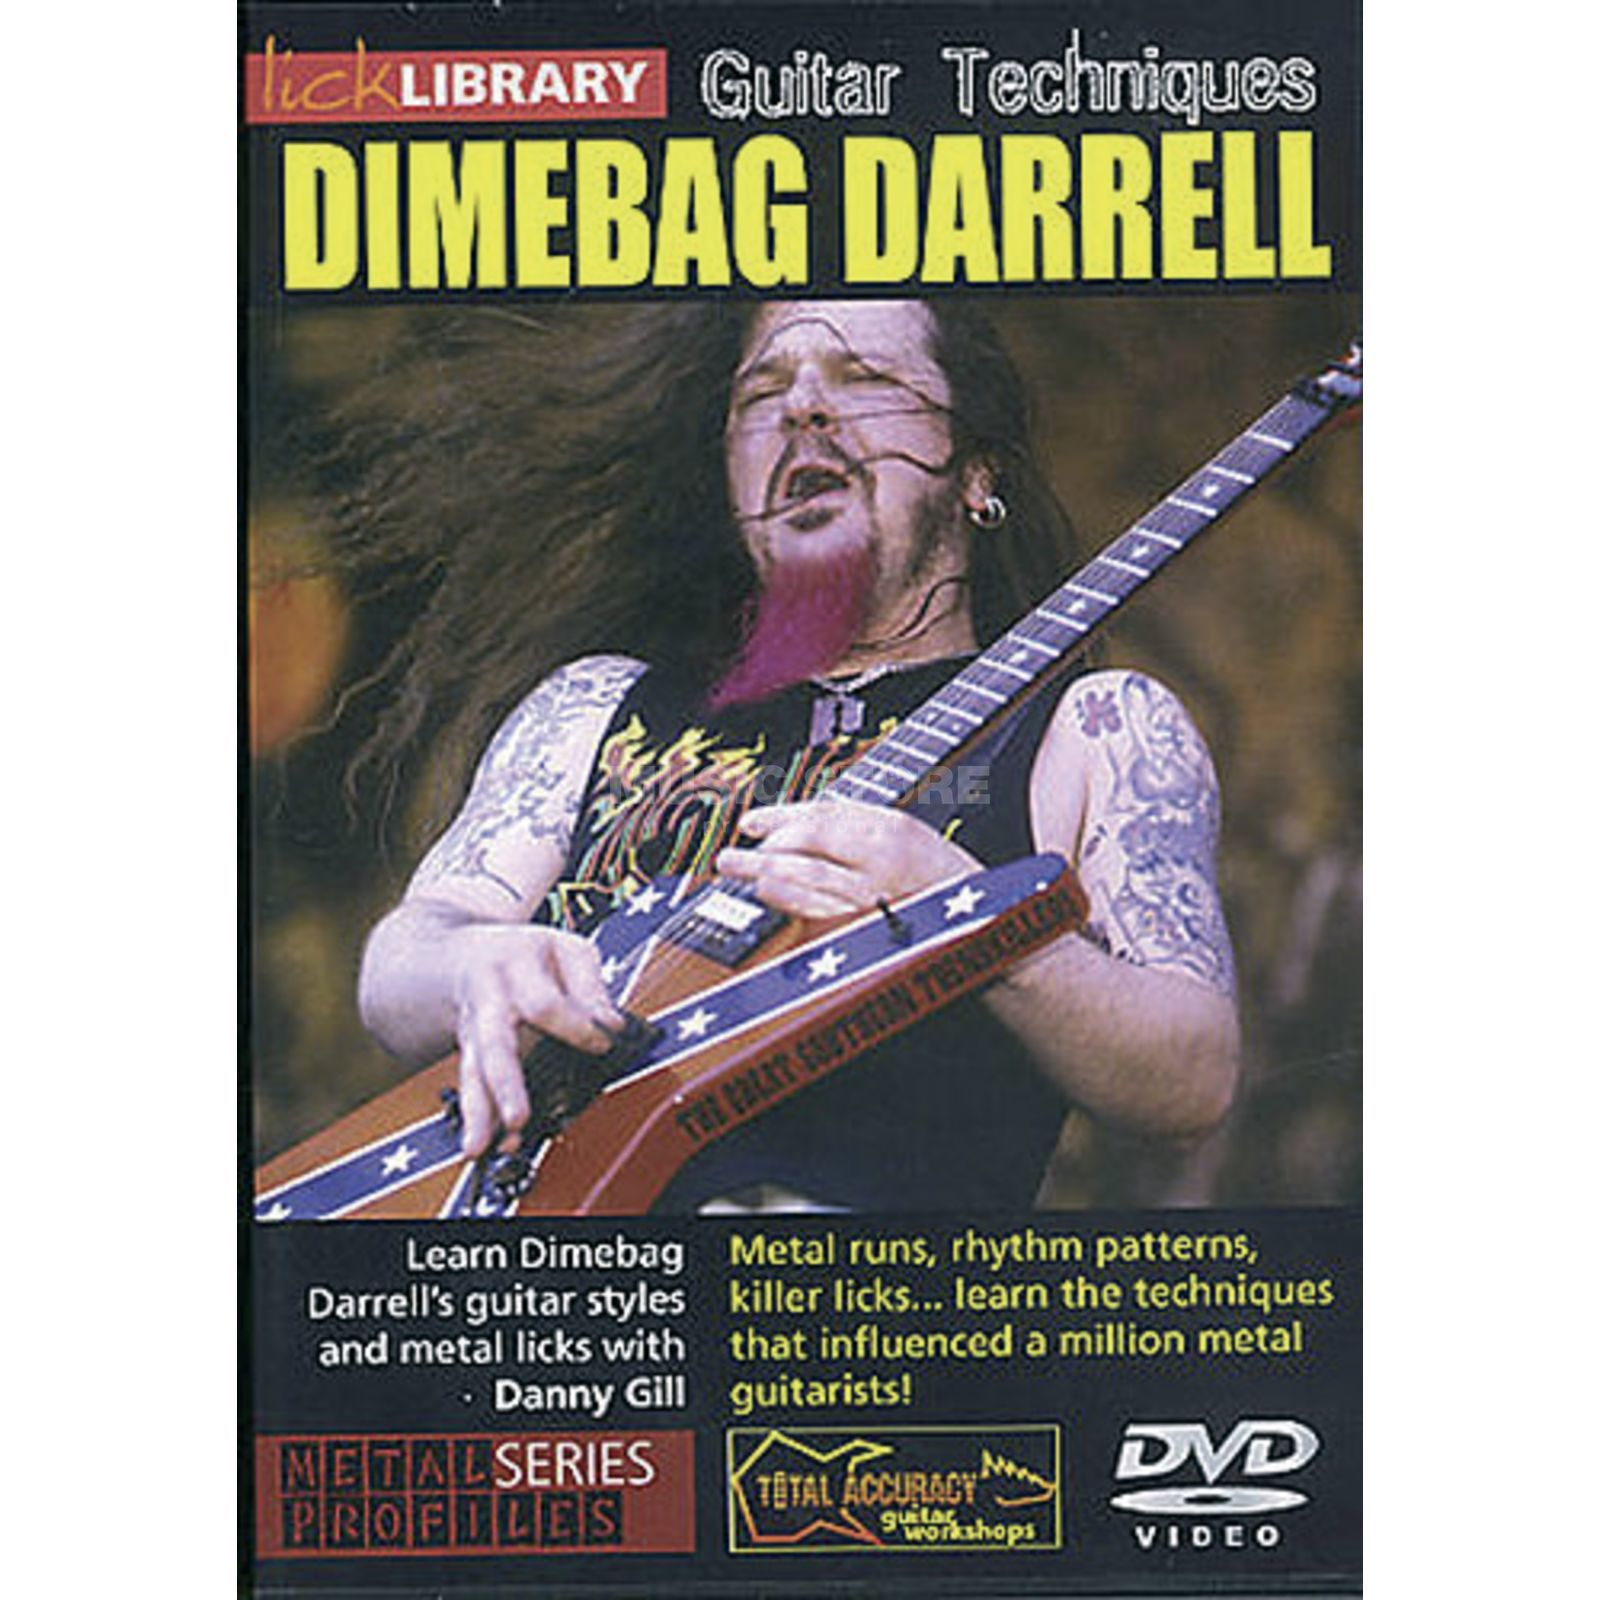 Roadrock International Lick Library: Learn To Play Dimebag Darrell DVD Produktbillede